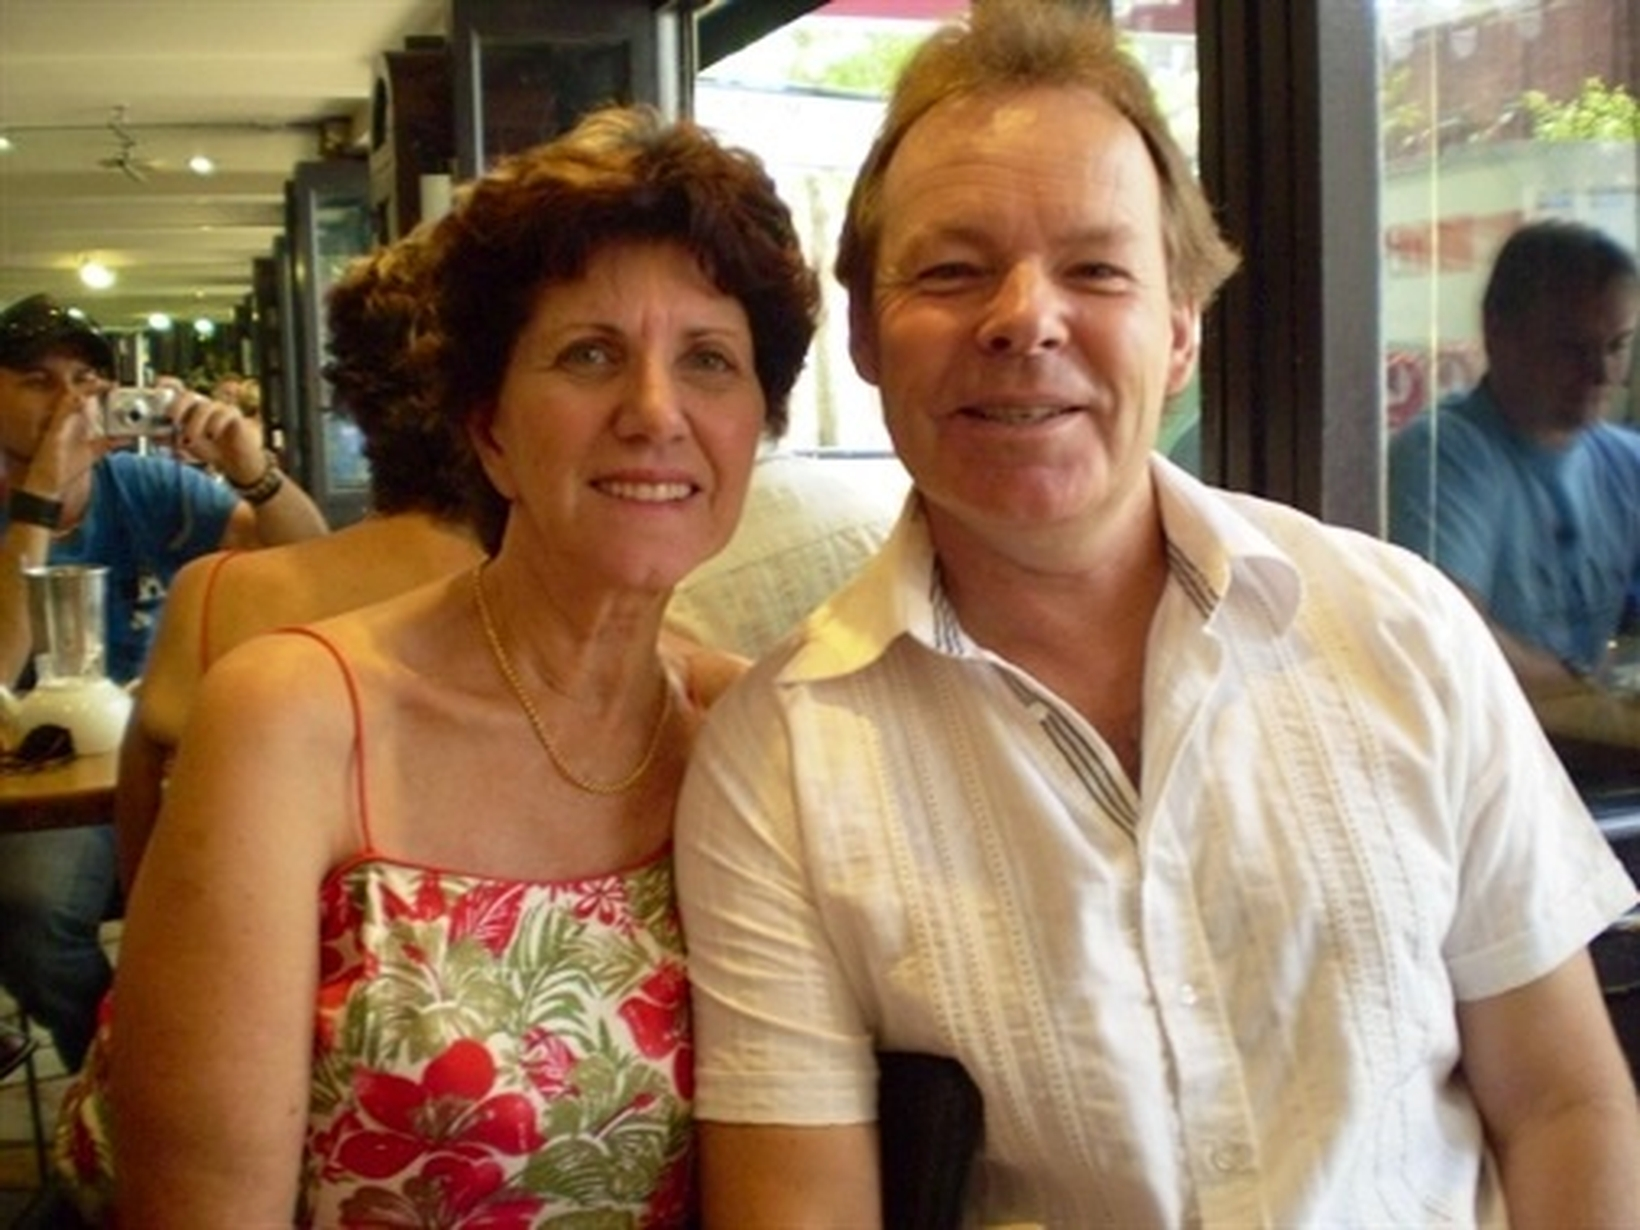 Alva & Murray from Gold Coast, Queensland, Australia